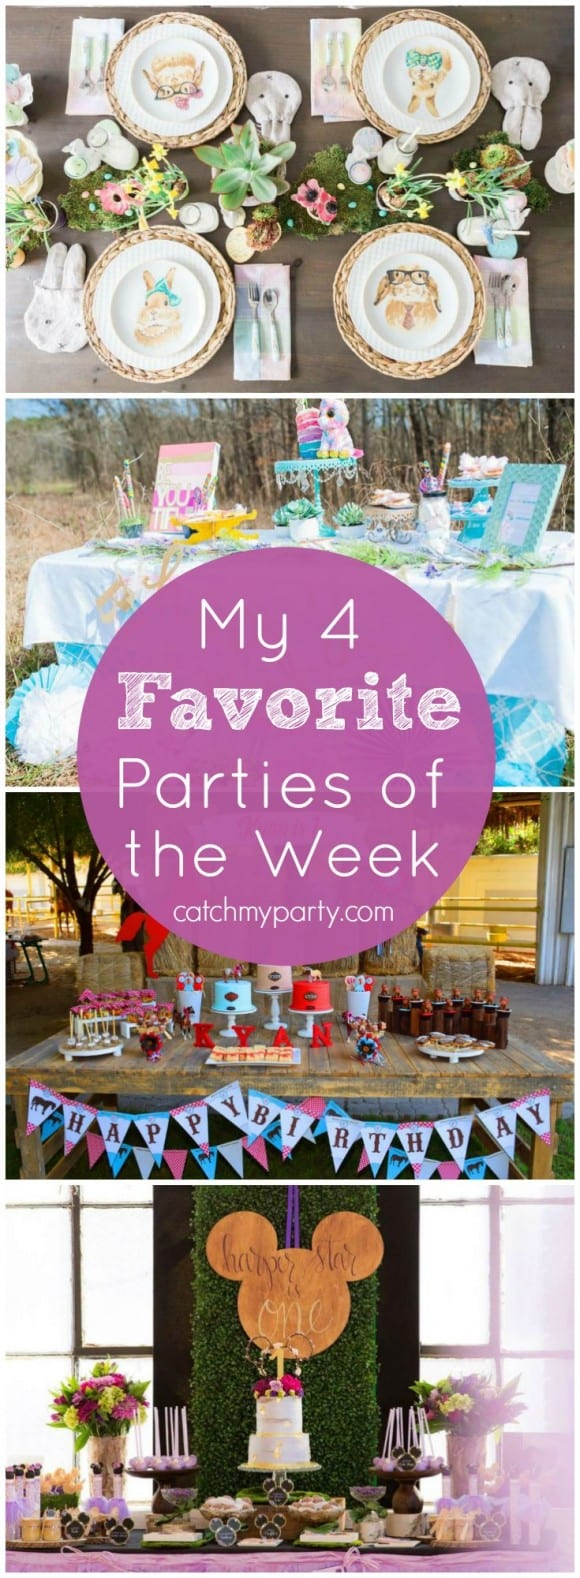 This week my favorite parties include a kids' Easter party, a magical party with fairies, unicorns and rainbows, a rustic horse birthday party, and an incredible woodland Minnie Mouse Party!| Catchmyparty.com